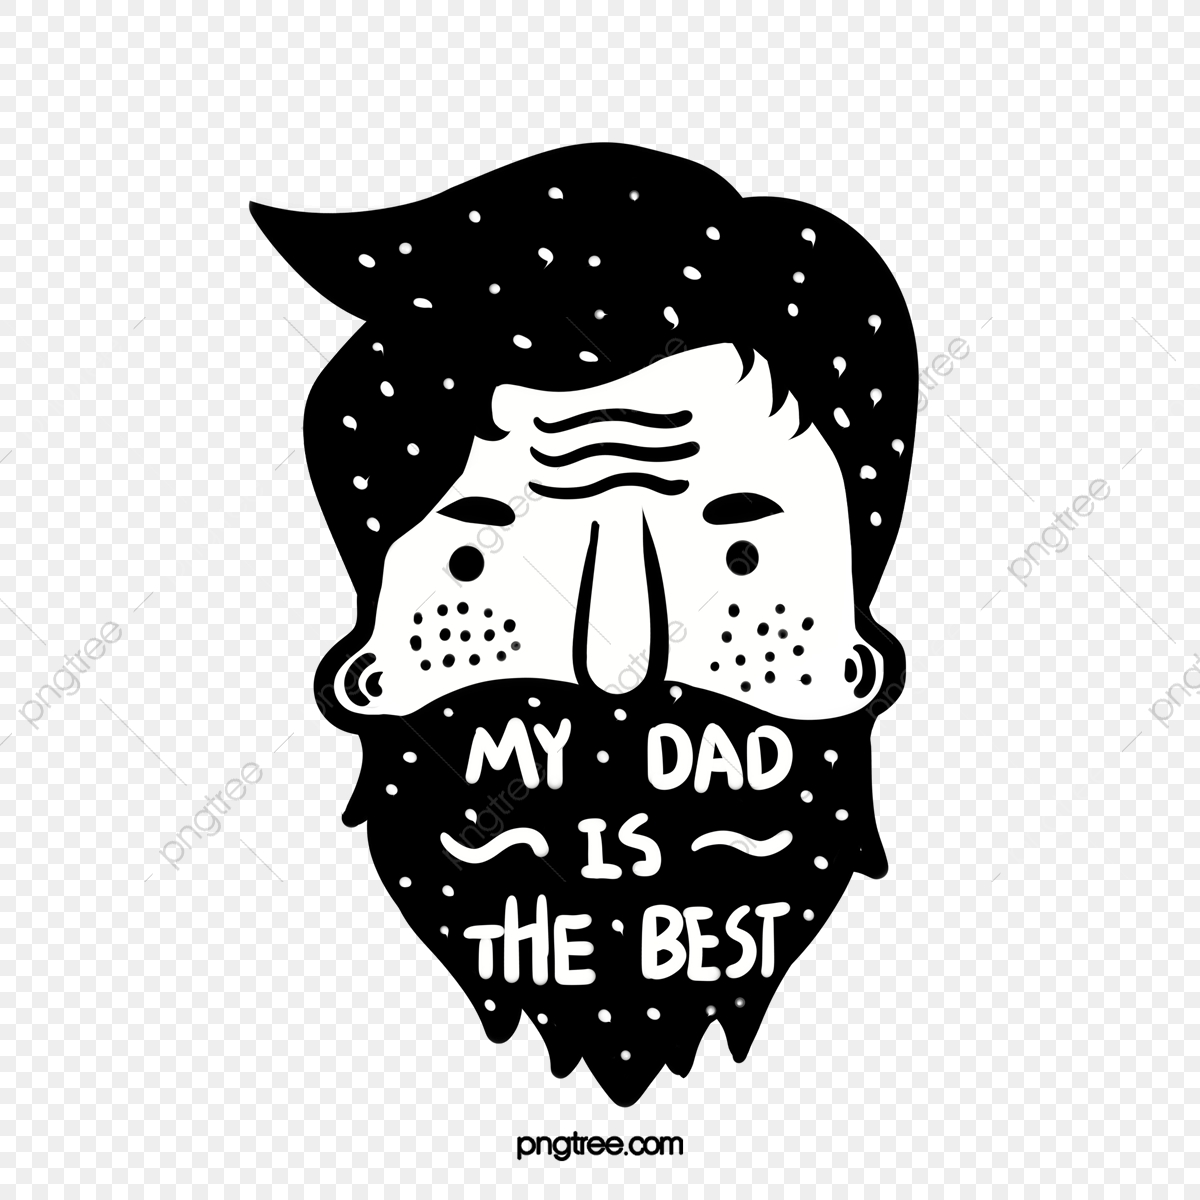 Hand Painted Bearded Father My Dad Is The Best Big Beard Hand Painted Png Transparent Clipart Image And Psd File For Free Download